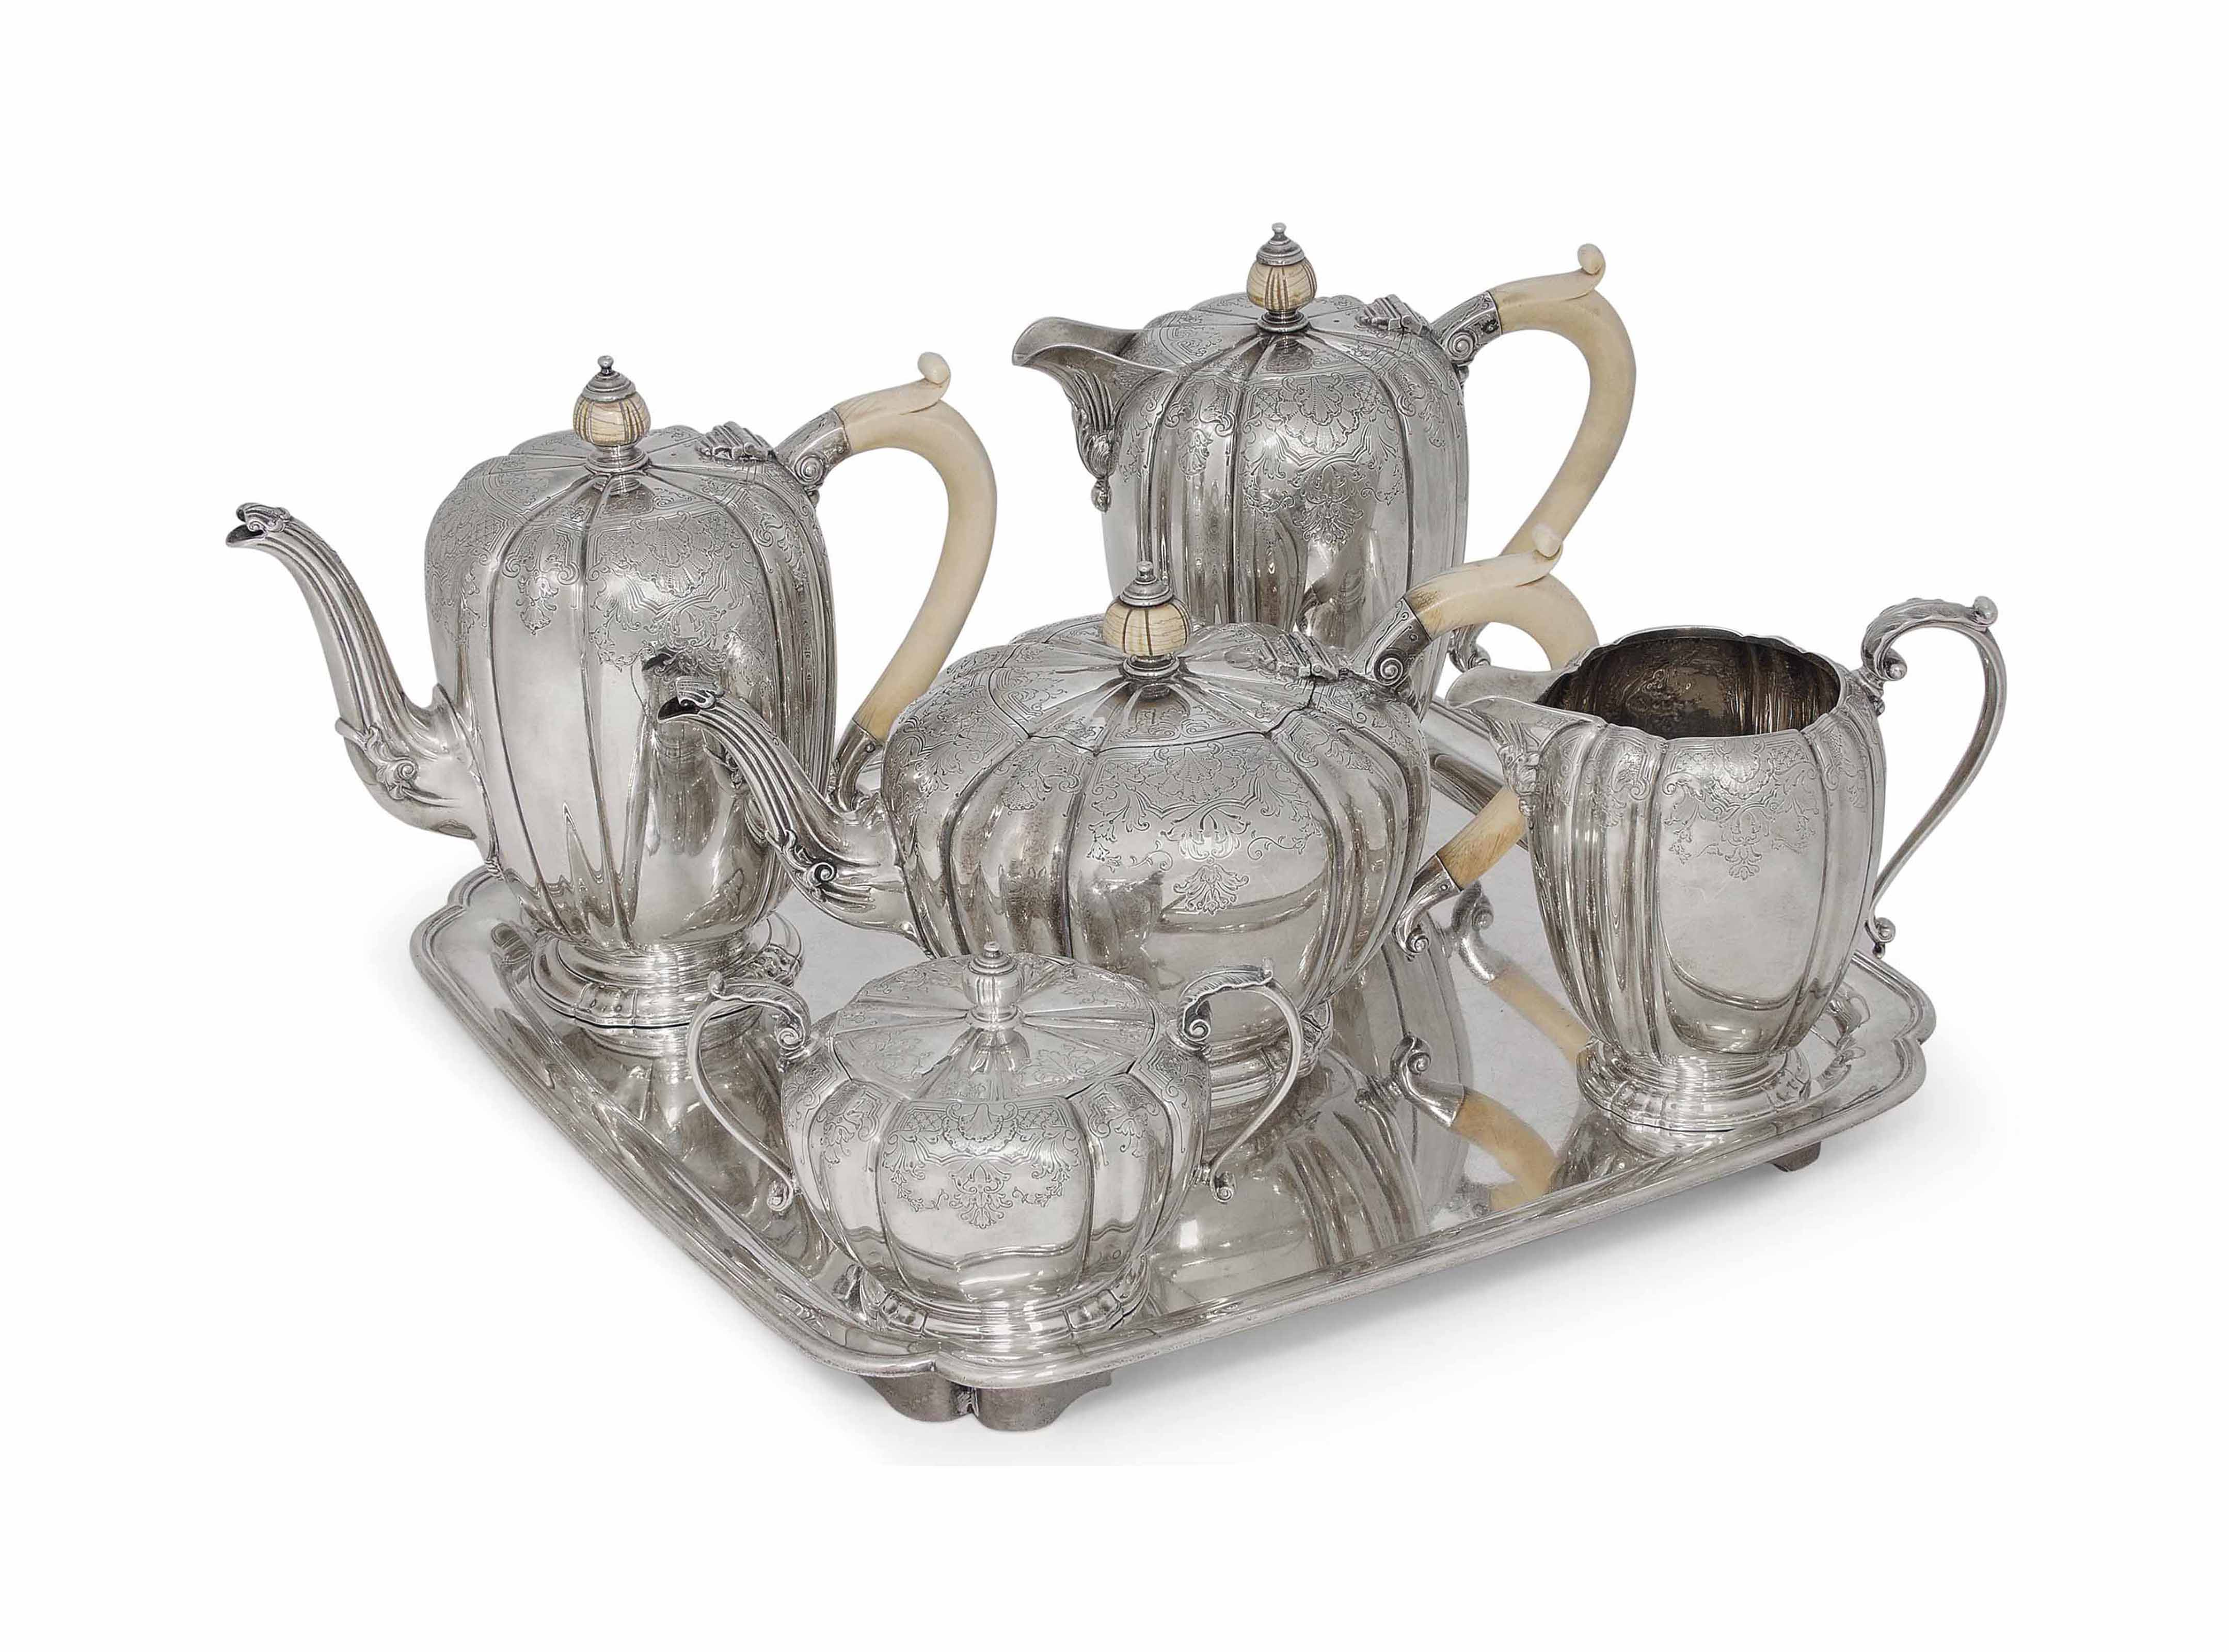 A FOUR -PIECE SILVER TEA AND COFFEE SET WITH IVORY HANDLES AND FINIALS AND A LATER COVERED SUGAR BOWL EN SUITE, TOGETHER WITH AN ASSOCIATED SHAPED SQUARE SALVER